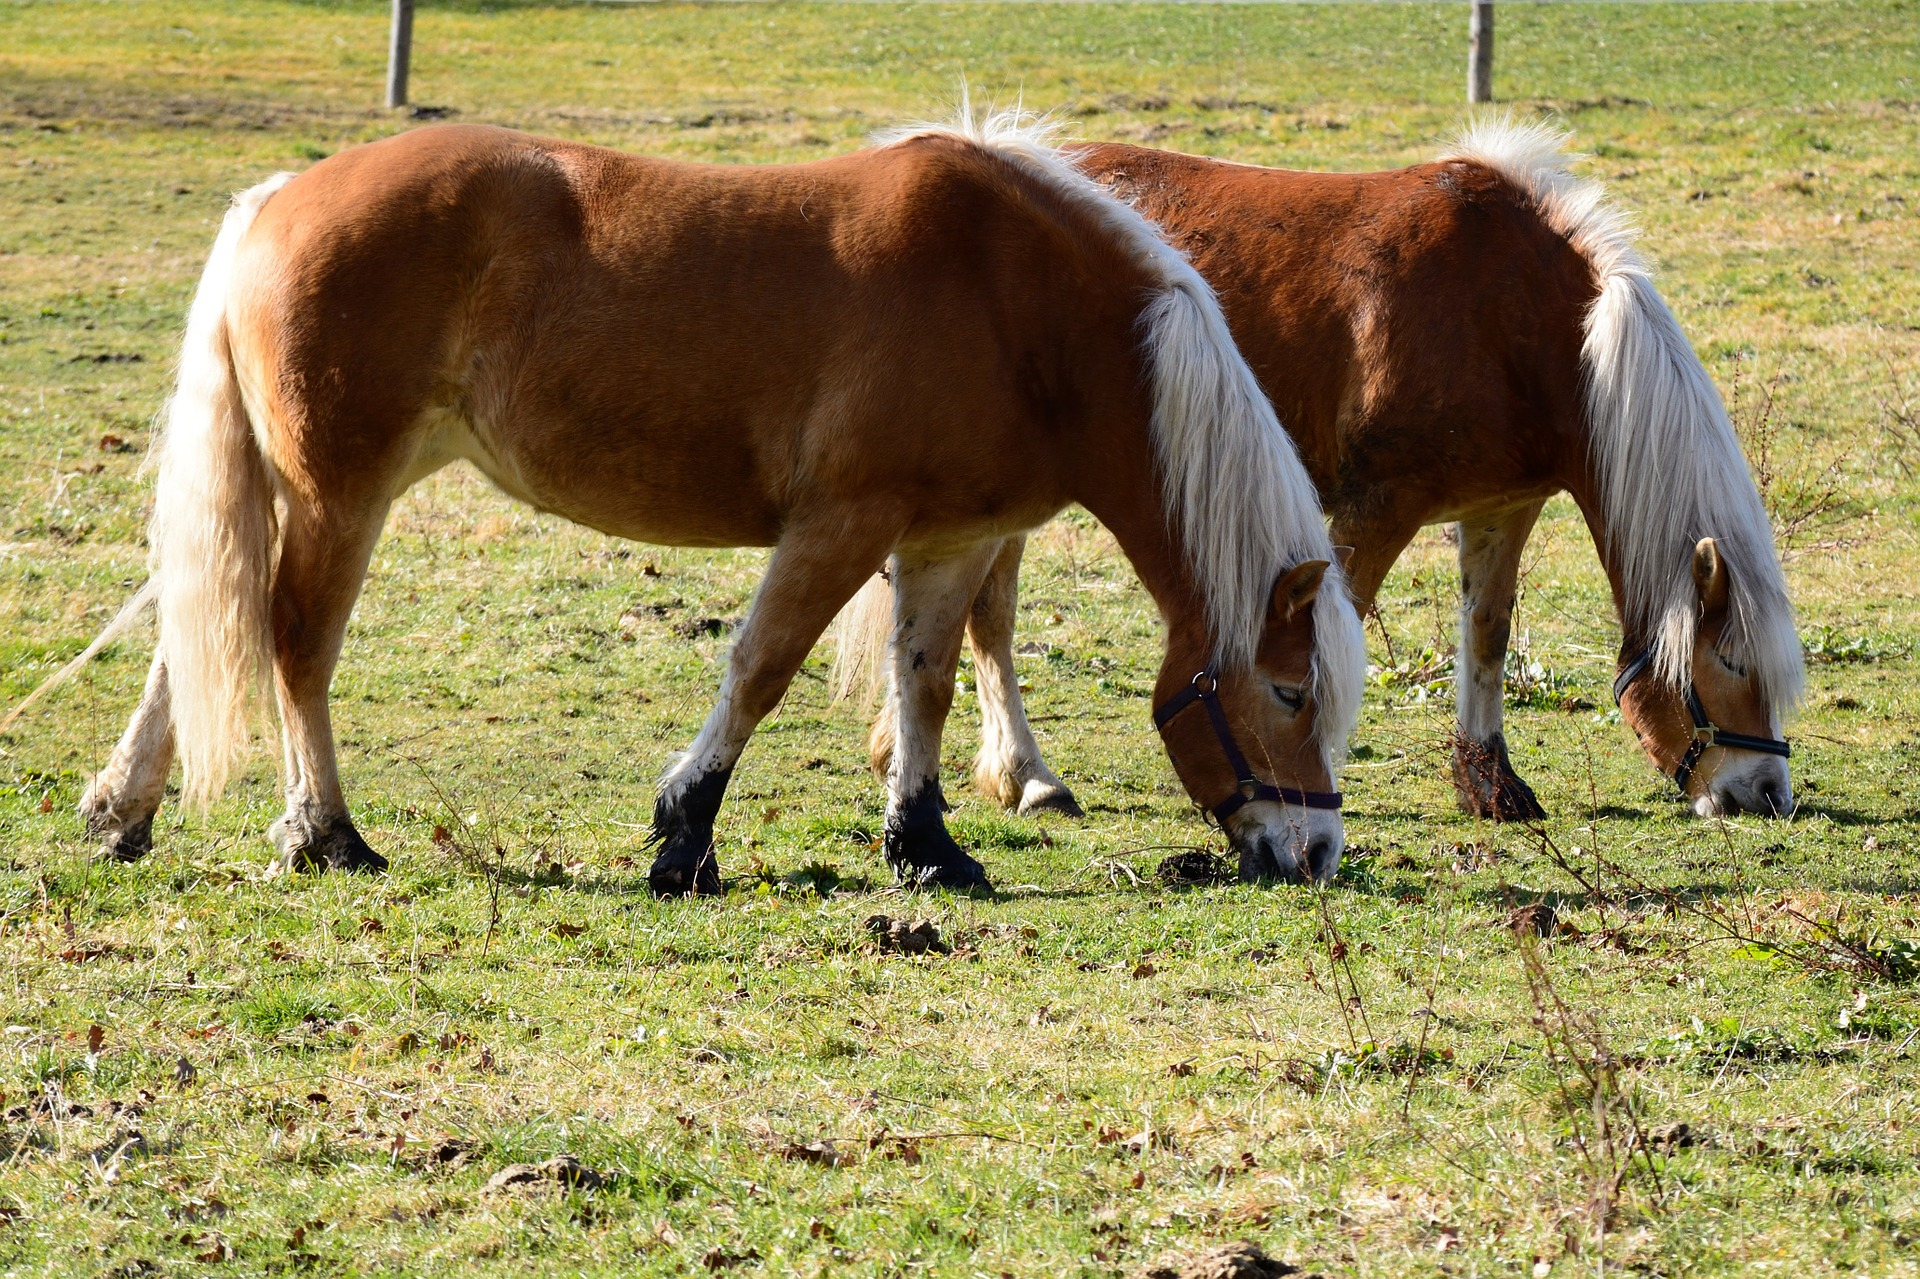 joint supplements are optional for inactive horses